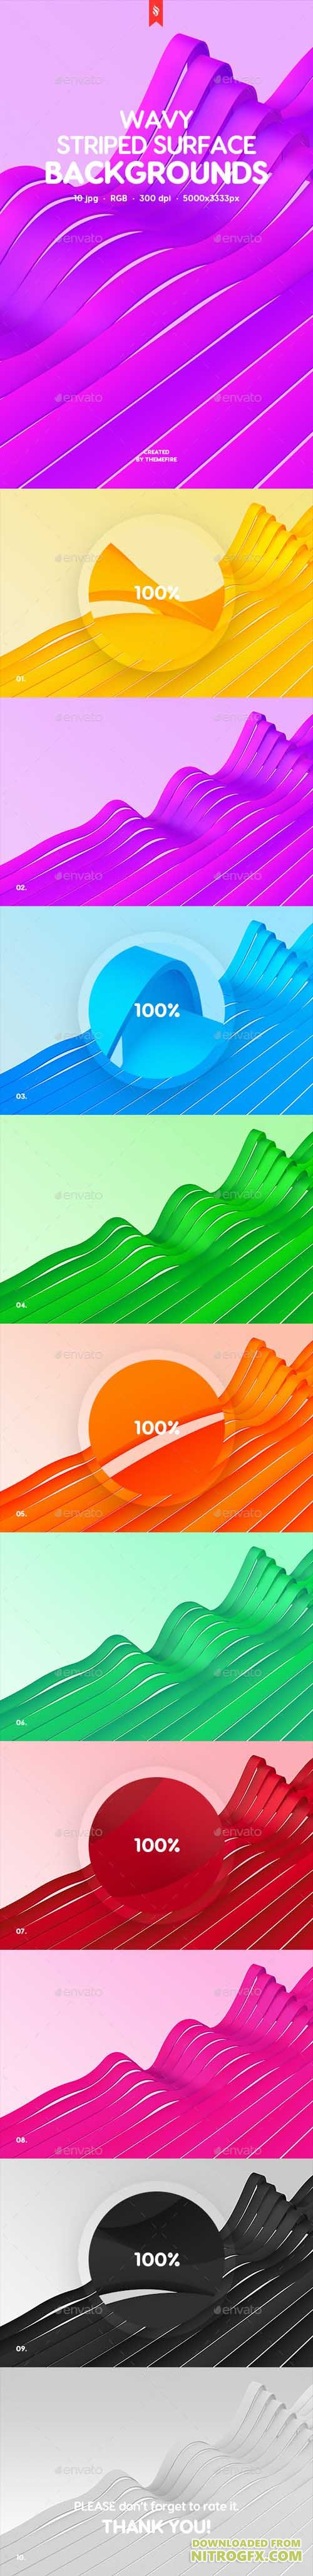 Wavy Striped Surface Backgrounds 20740358